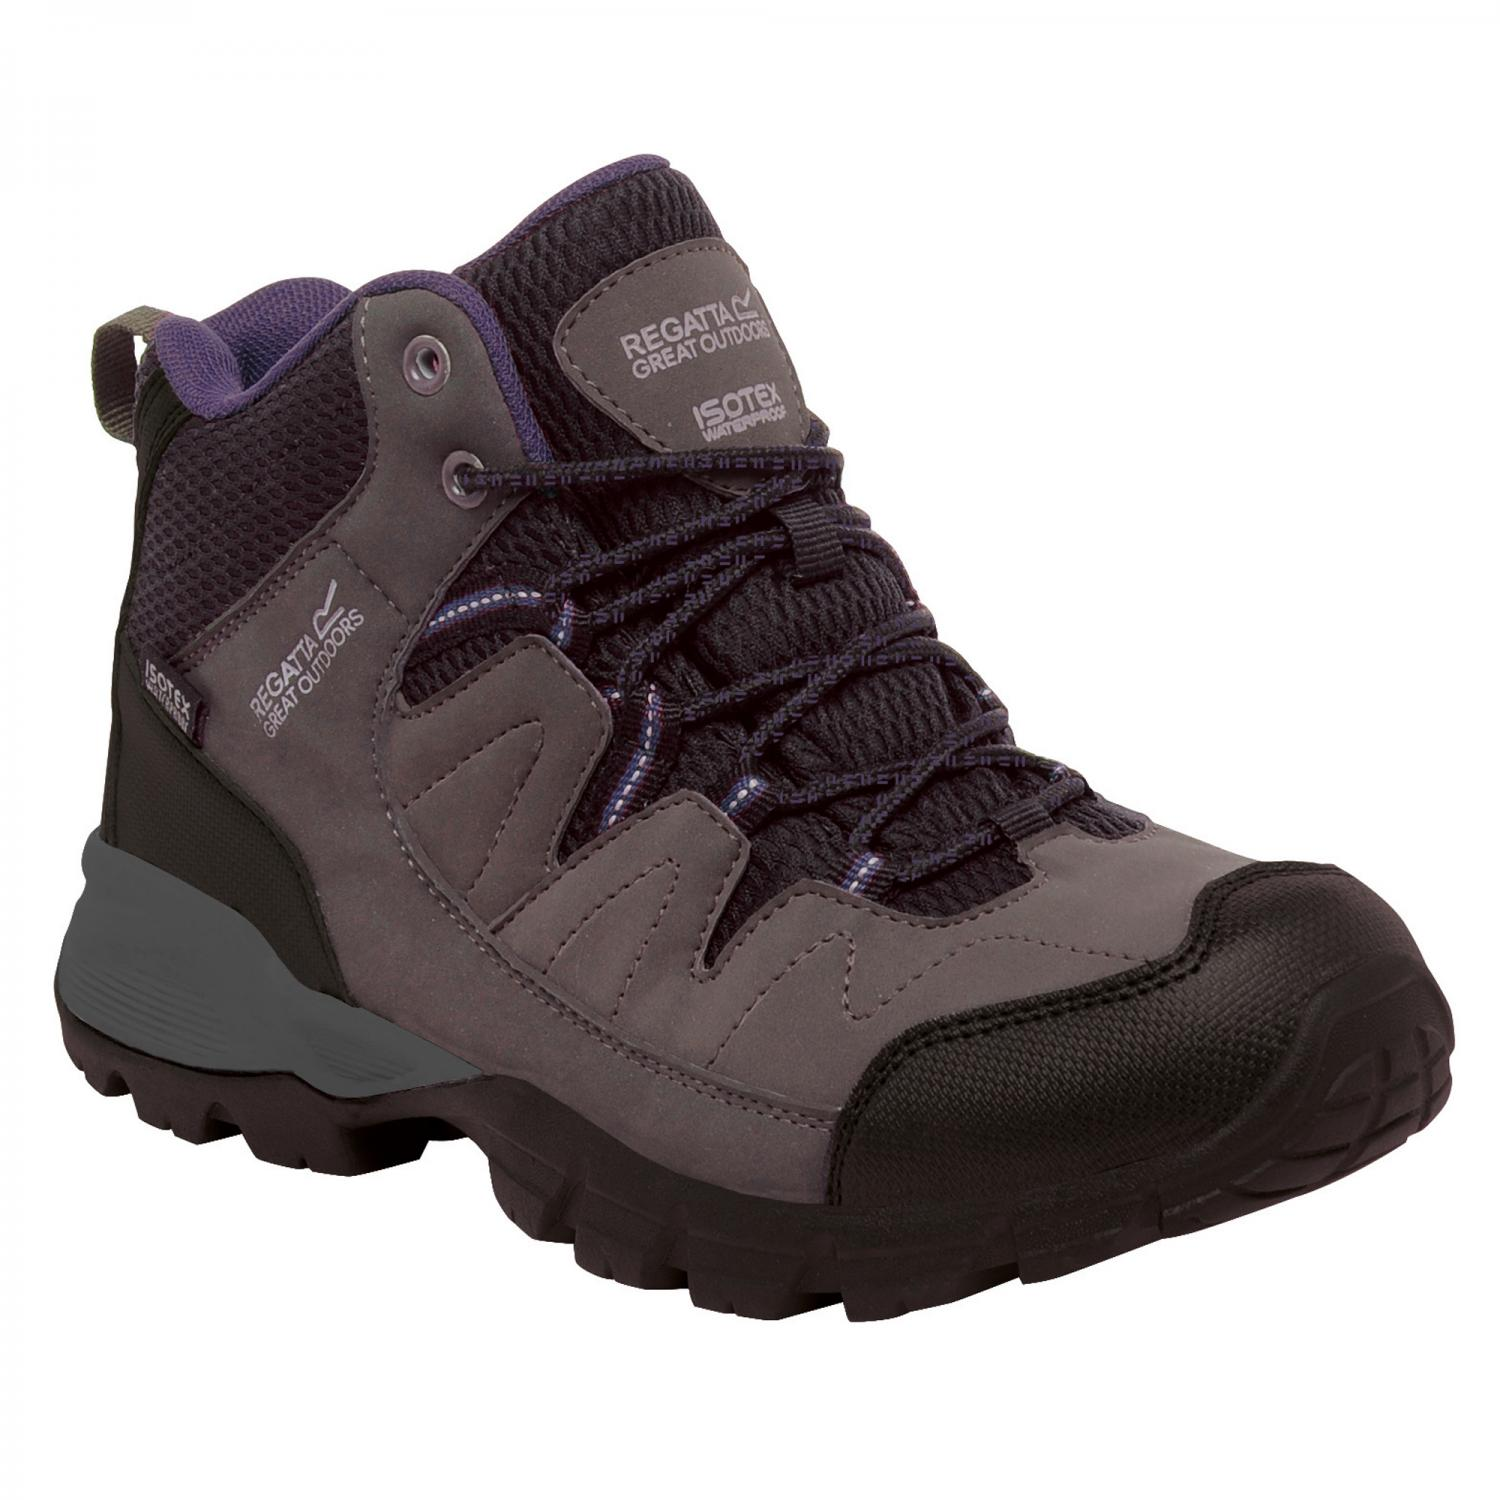 Lady Holcombe Mid Walking Boot Shark Blackberry